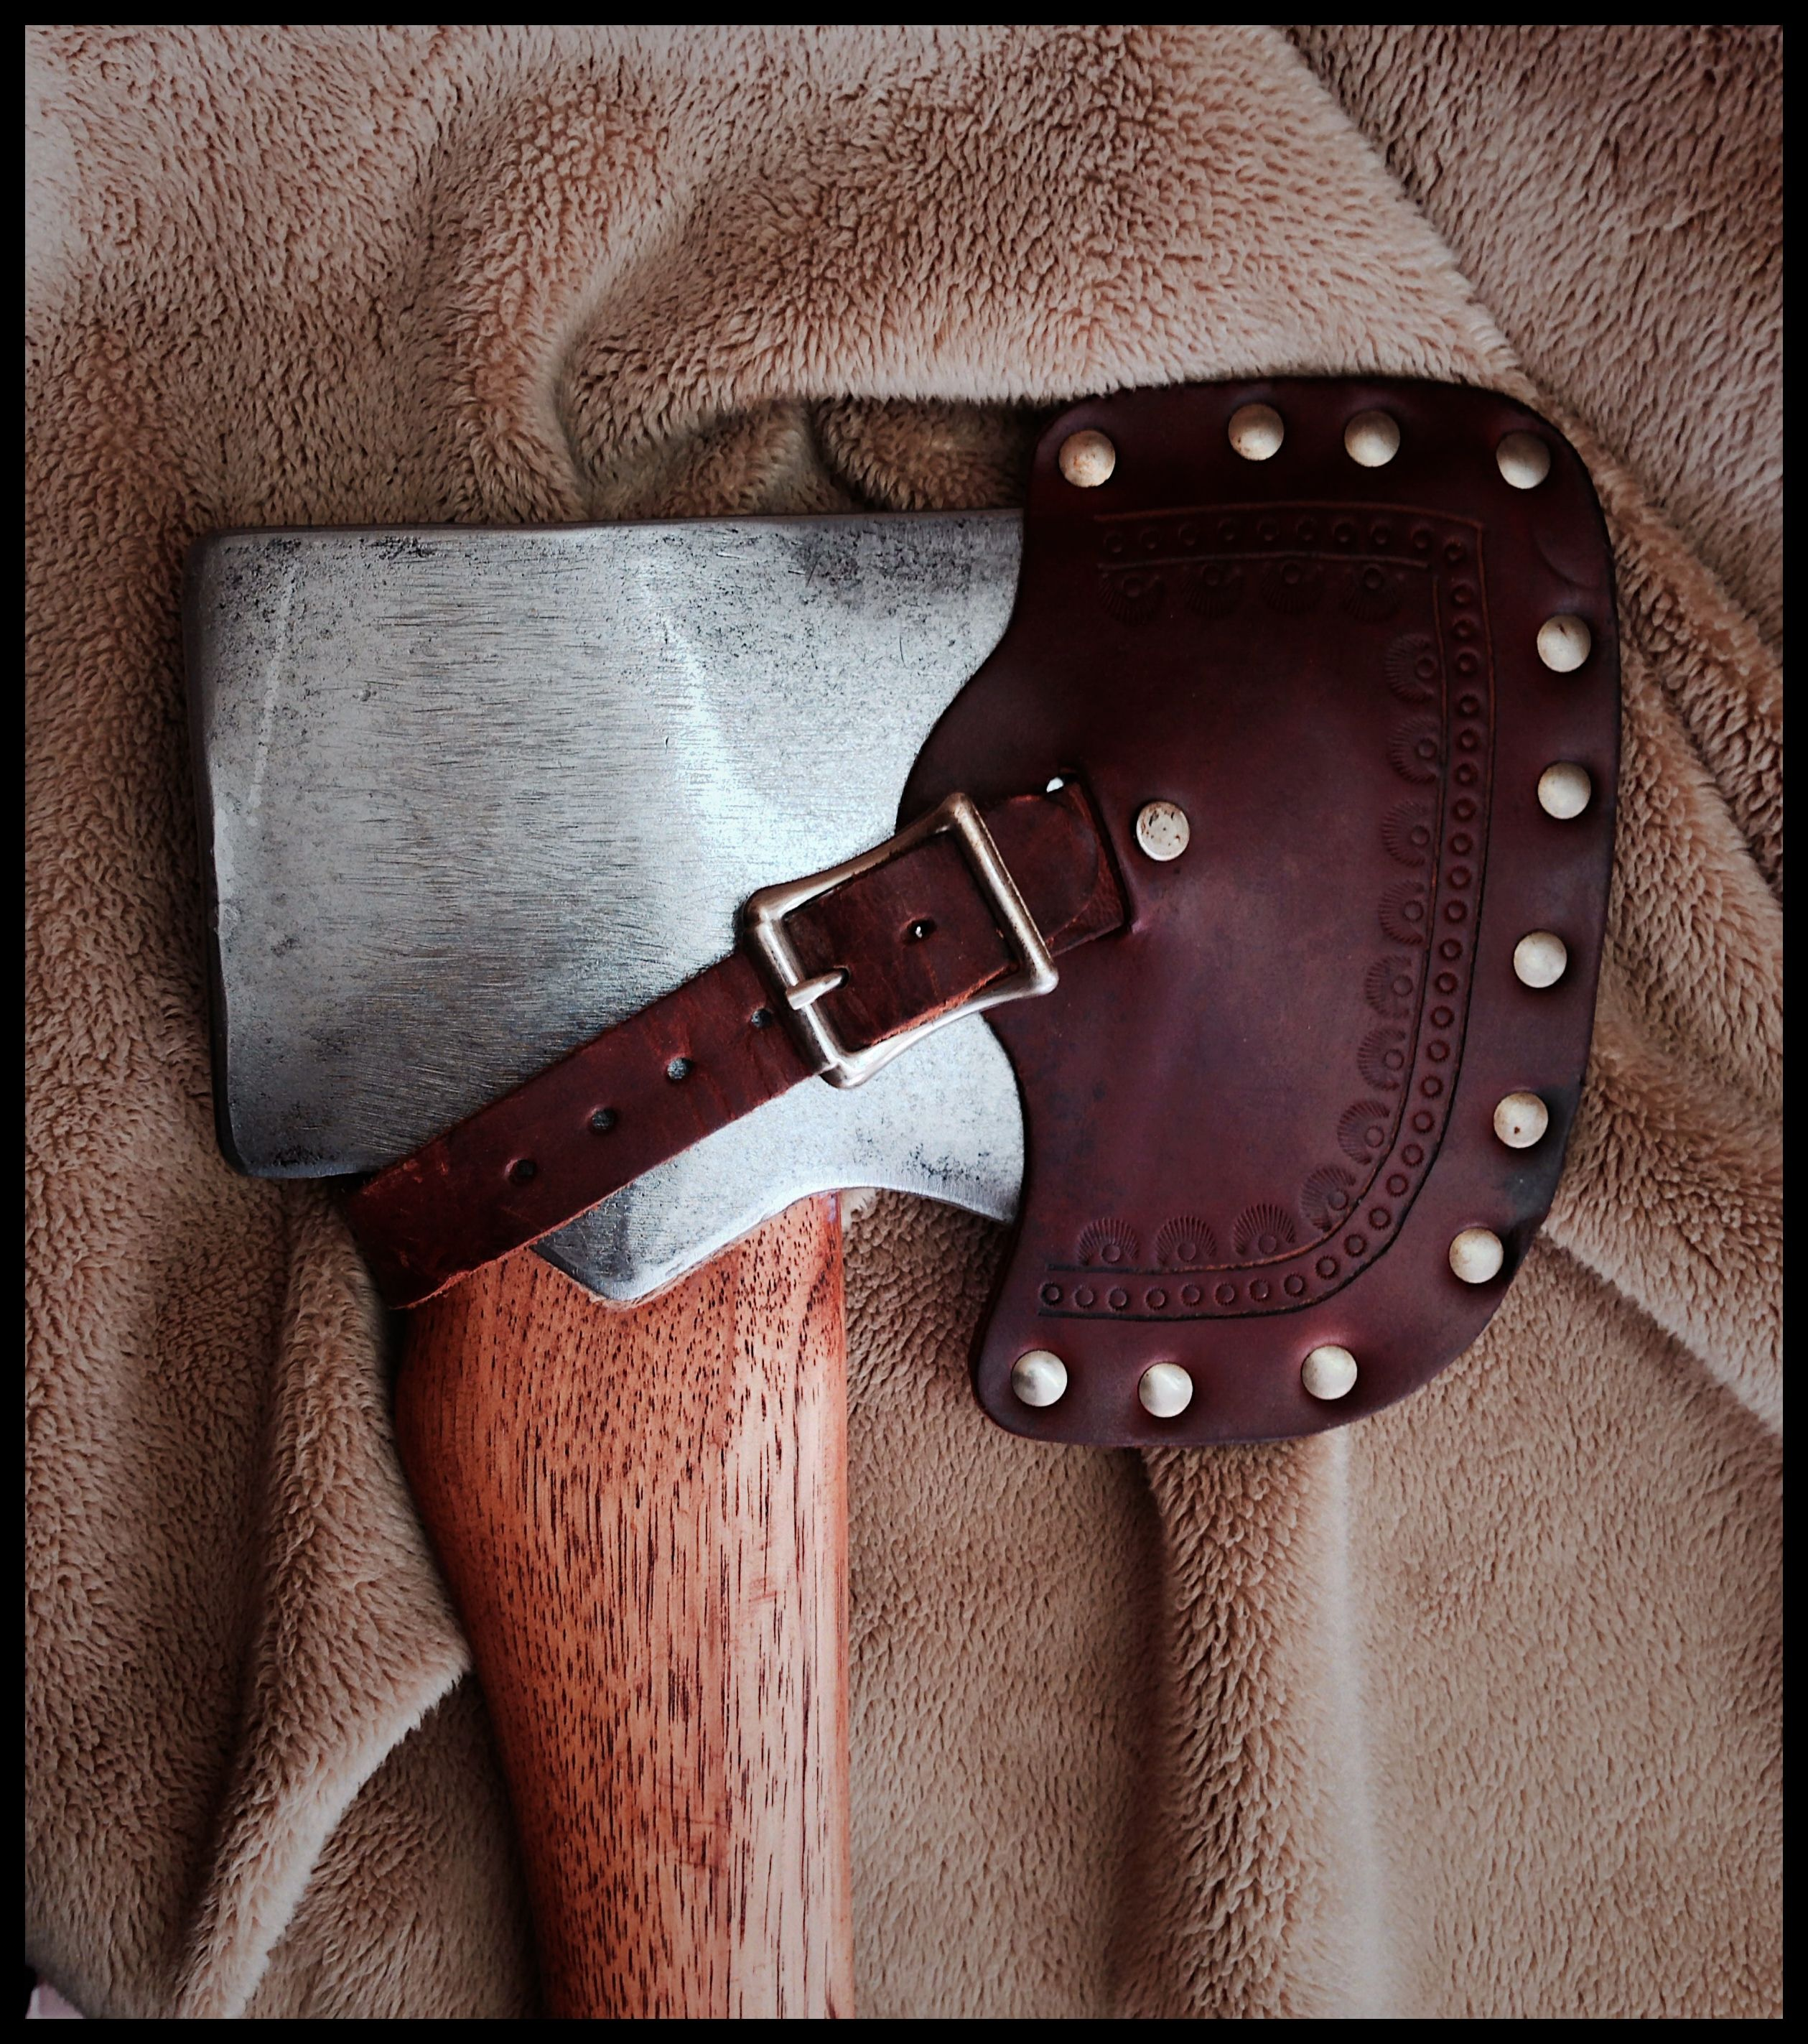 Vintage Jersey Axe with Custom Leather Sheath by John Black